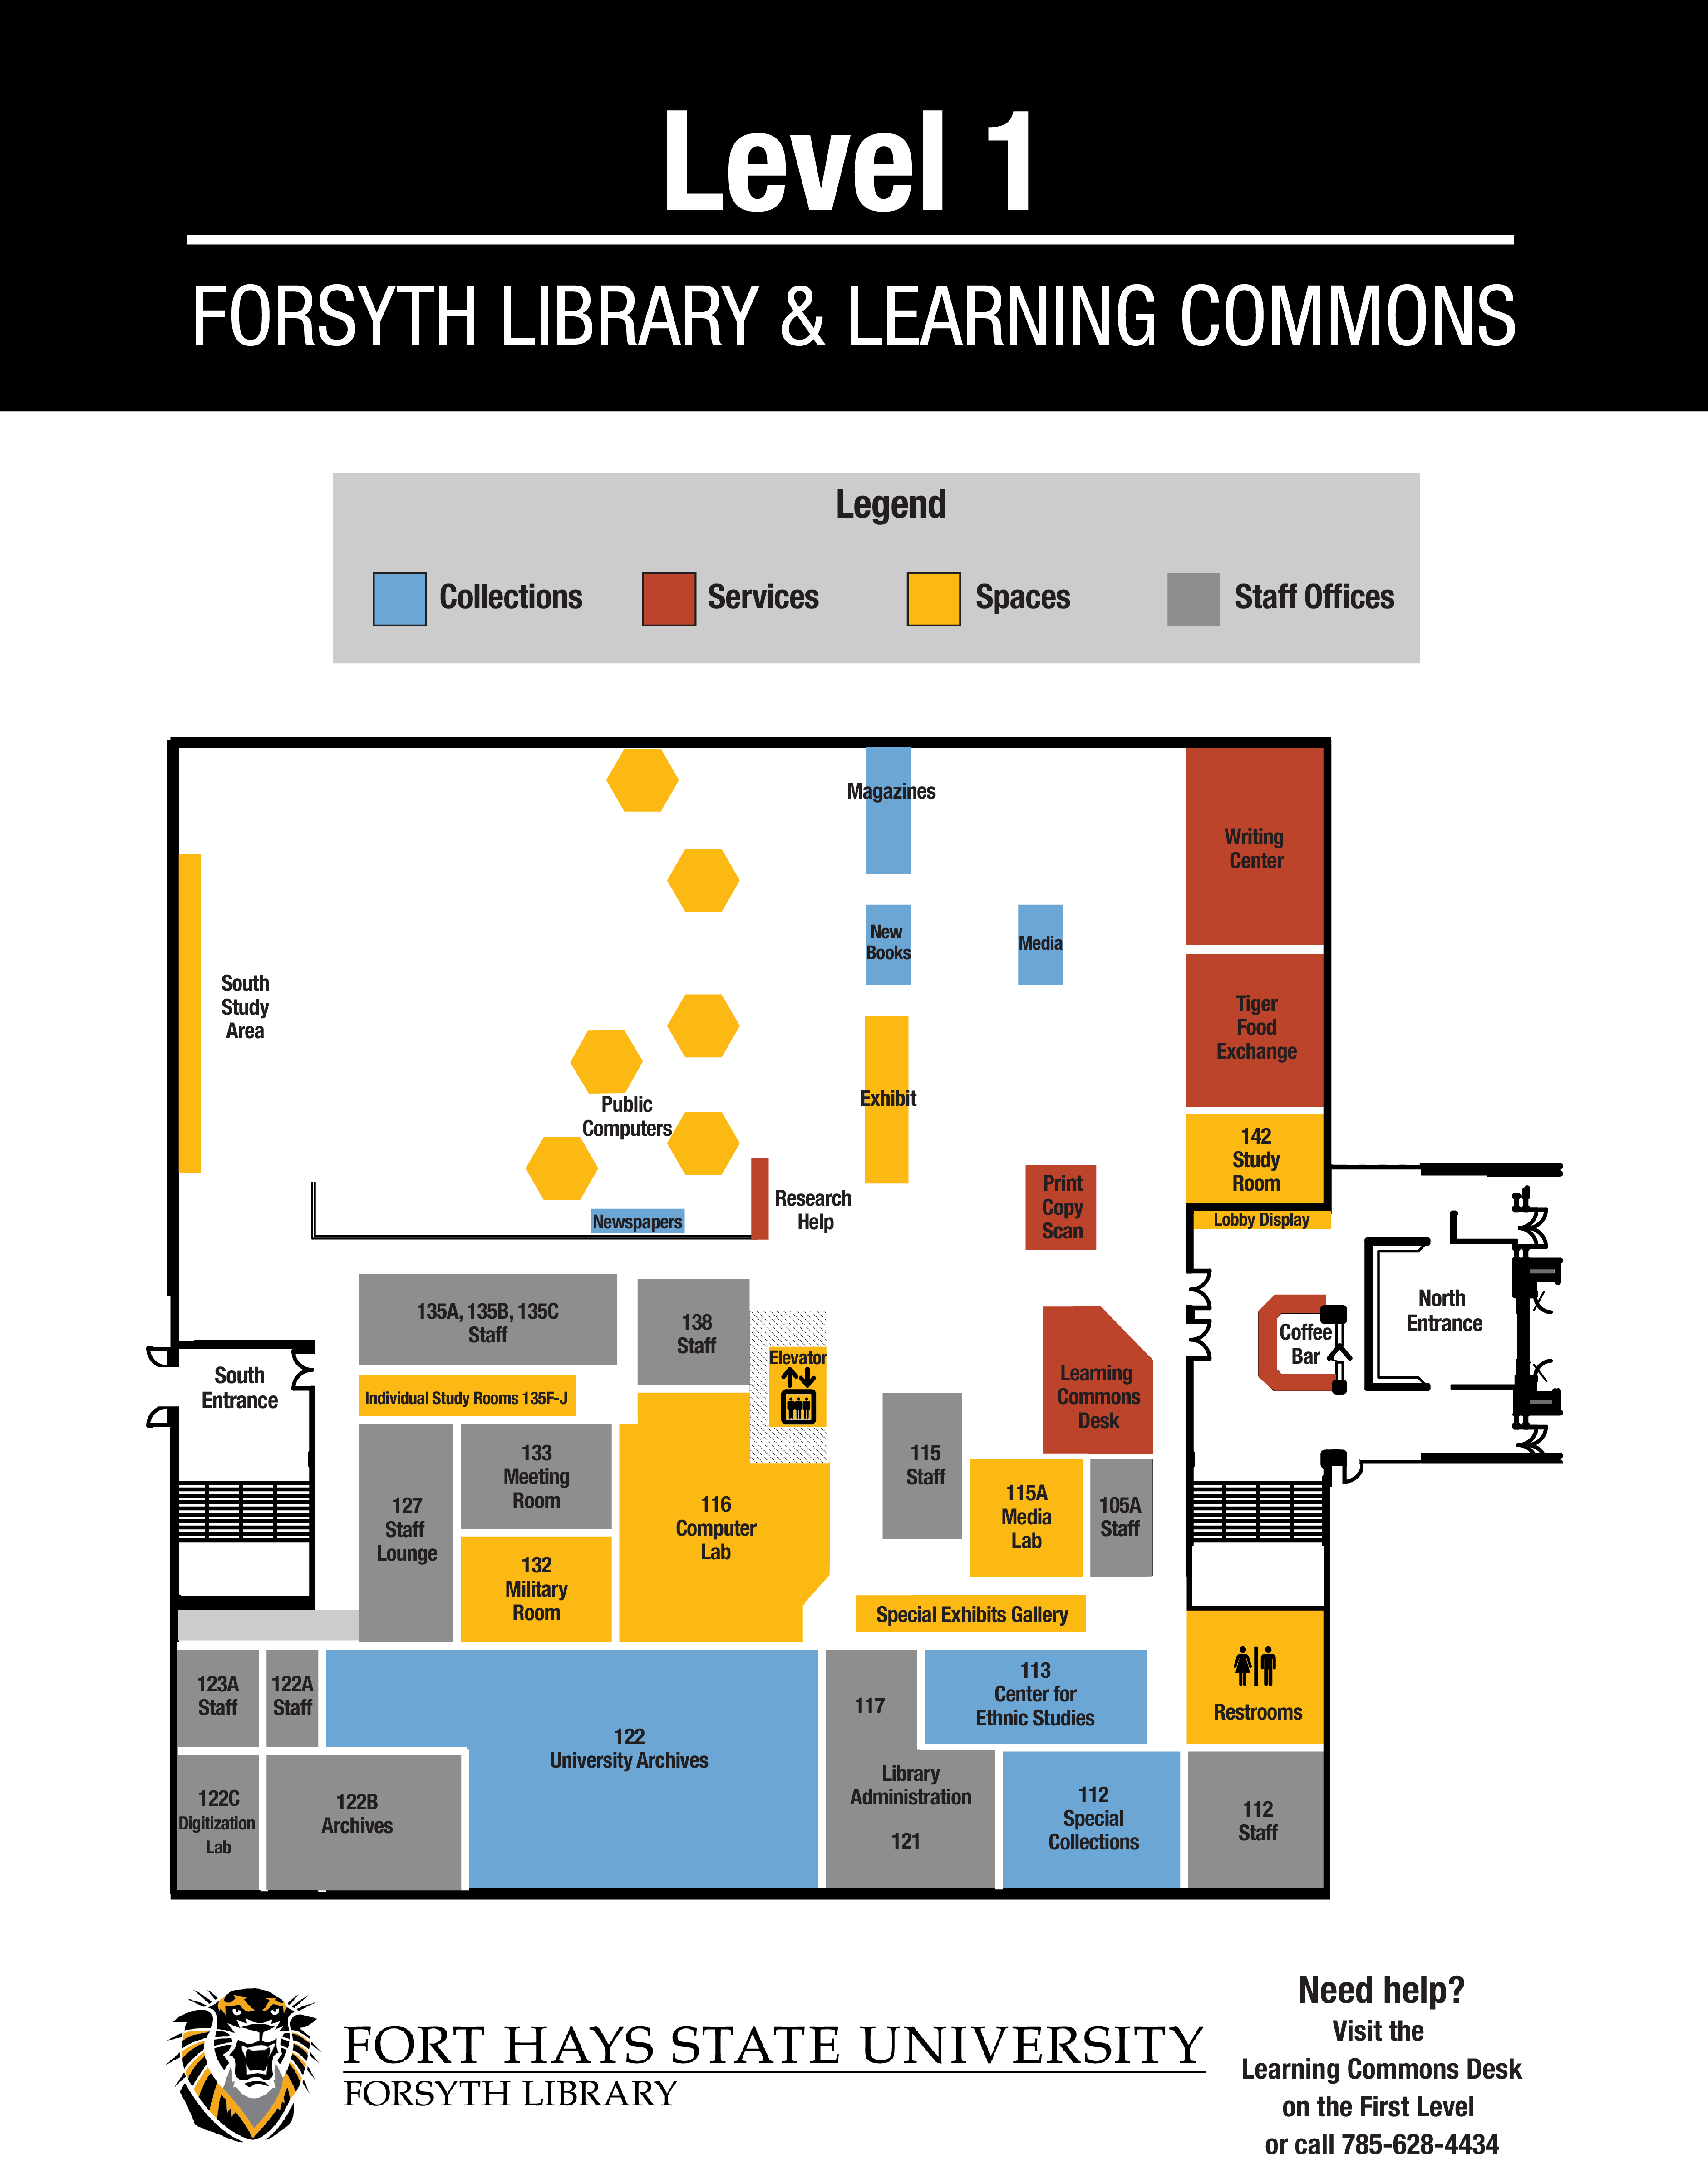 map of main level of forsyth library